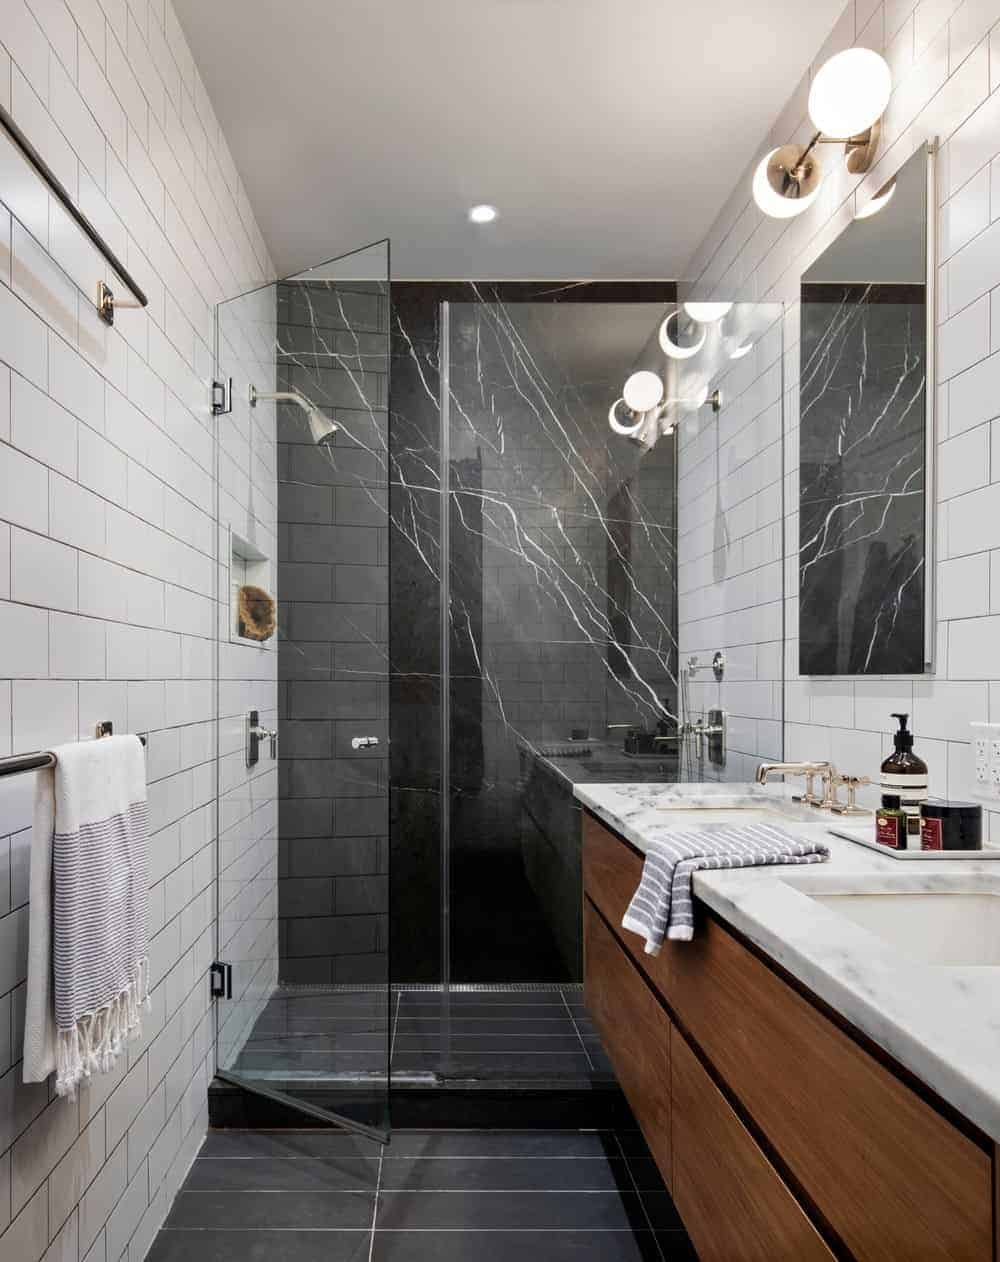 There's a dual sink vanity on the side fitted with cabinets and a walk-in shower enclosed in the glass door. It also has a black and white tiled wall.